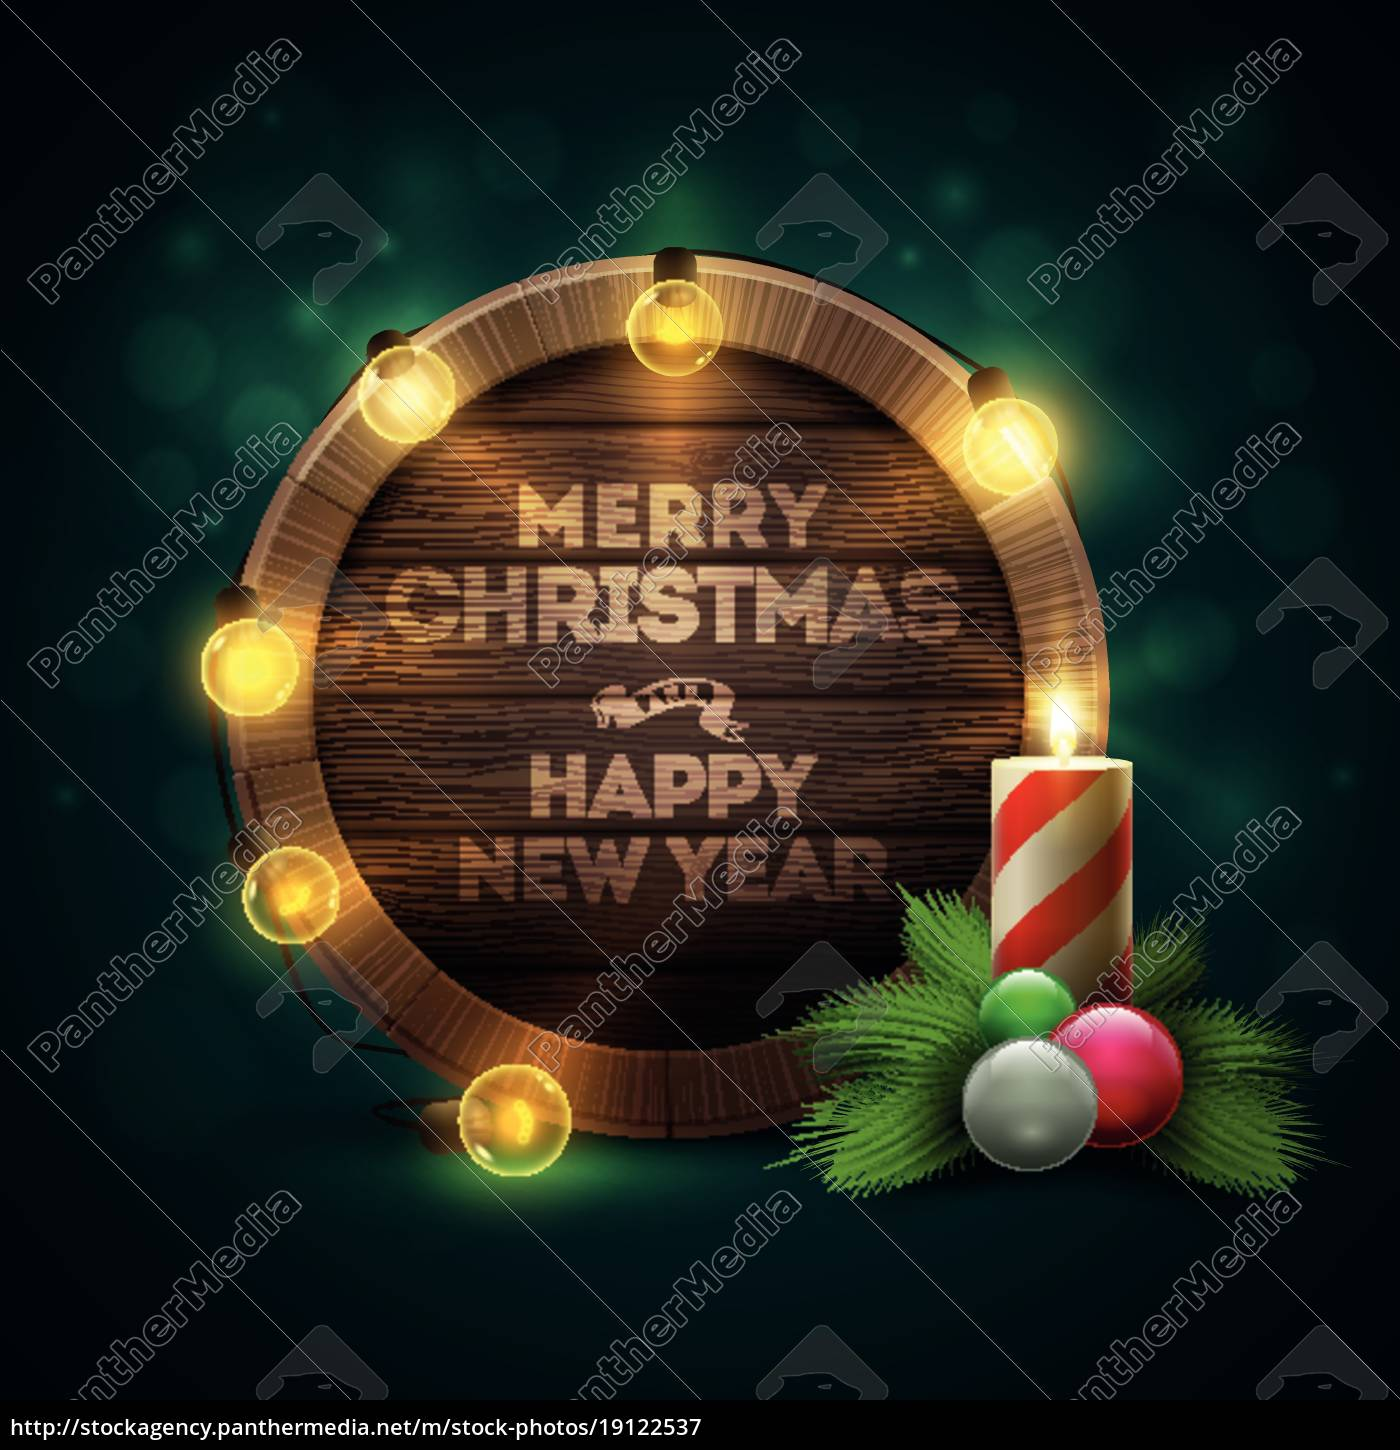 vector, illustration, of, wooden, christmas, and - 19122537